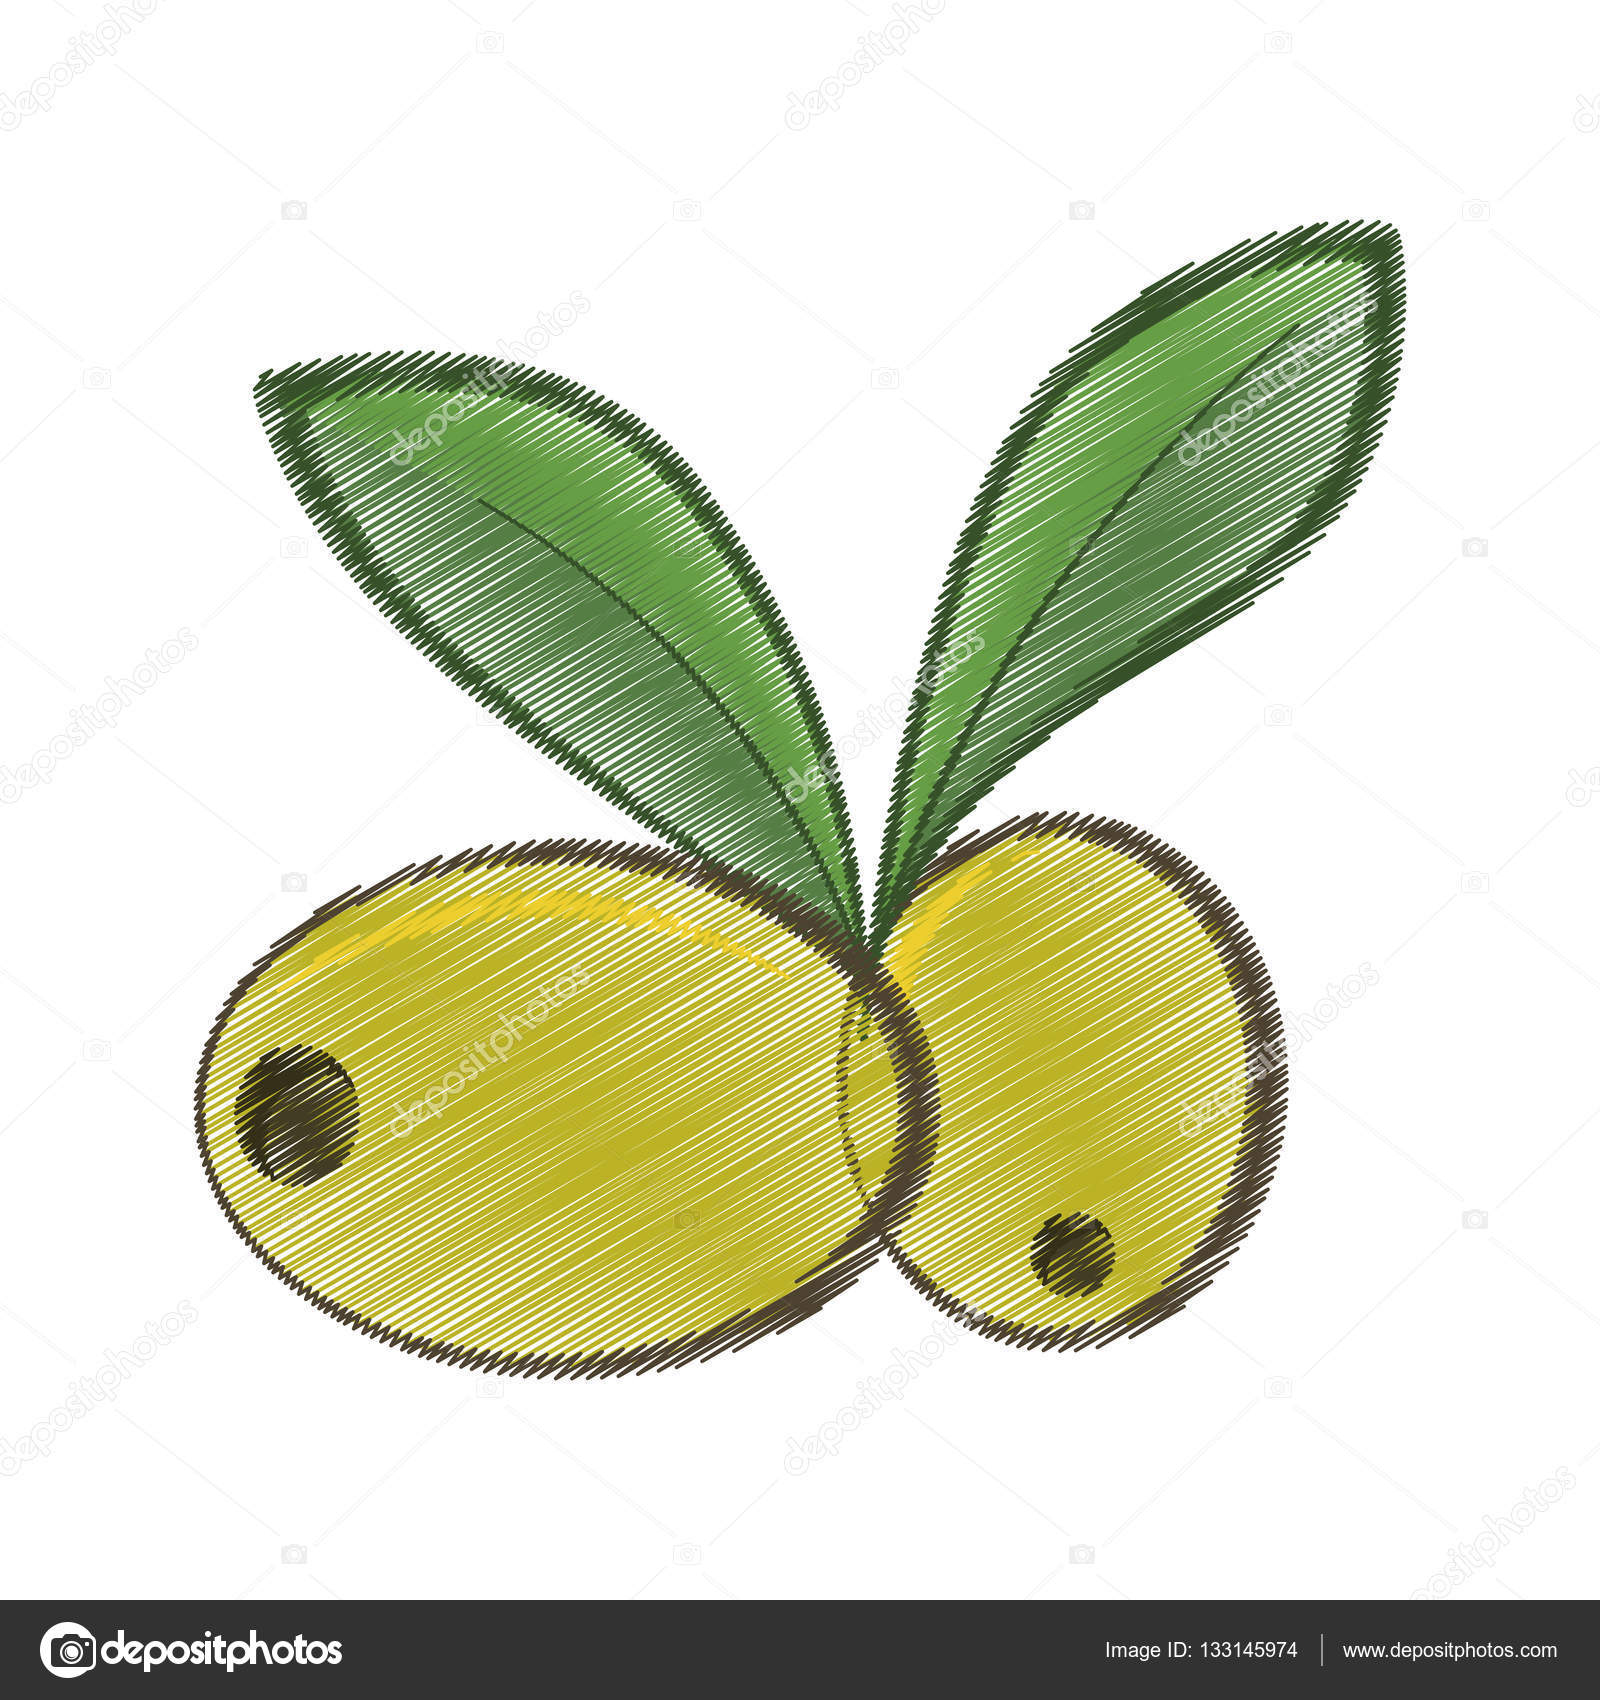 Olive Drawing at GetDrawings.com | Free for personal use Olive ...